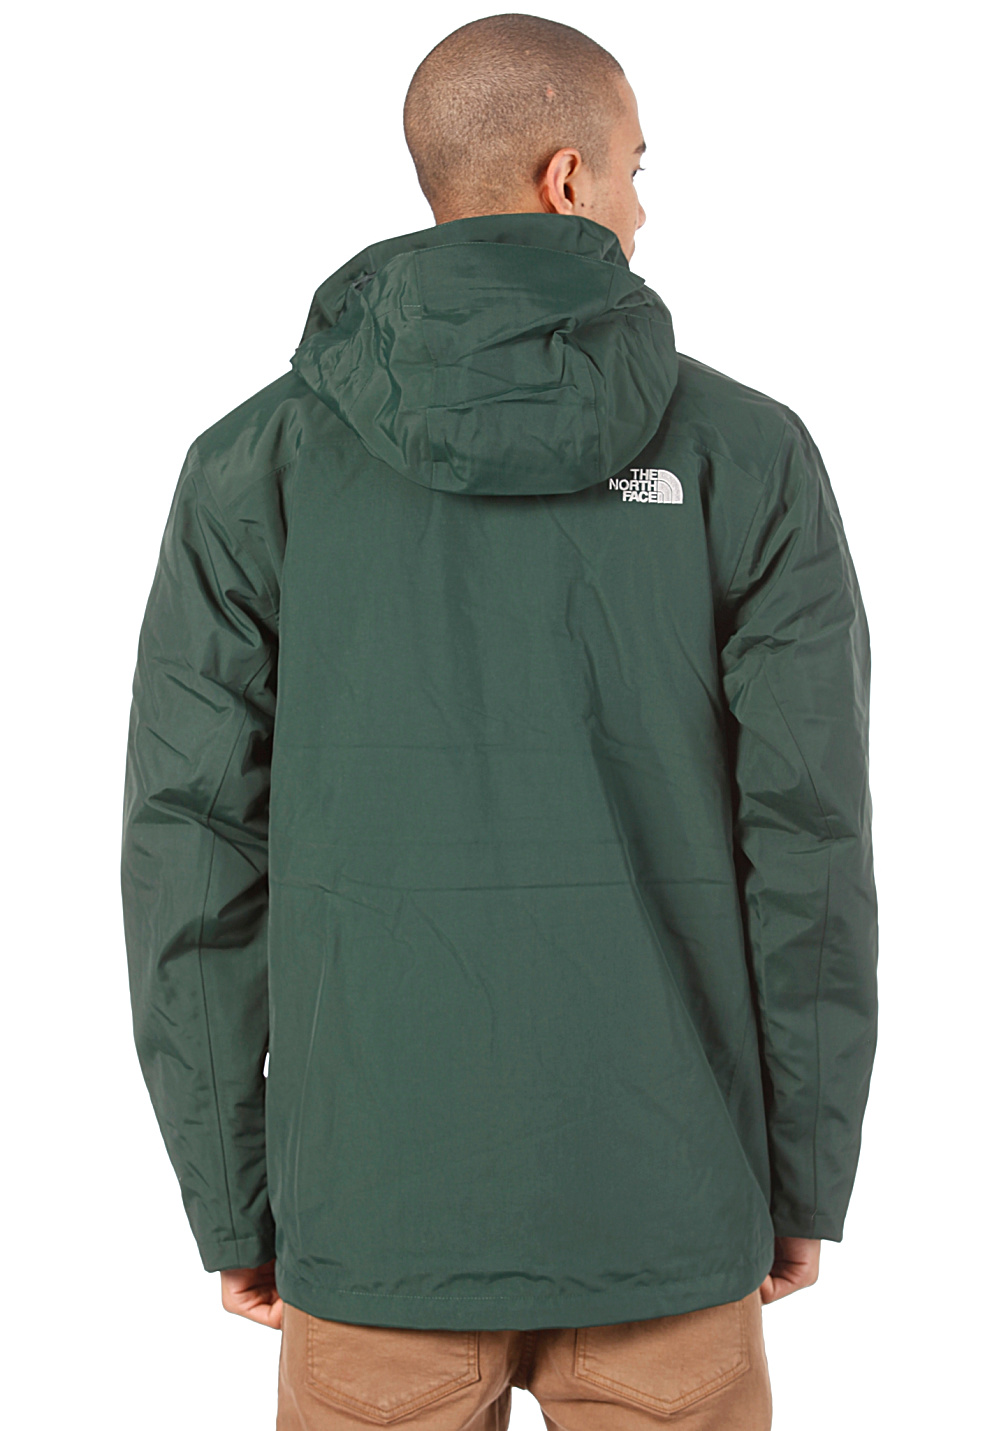 Next. -76%. This product is currently out of stock. THE NORTH FACE. Cassius  Triclimate Jacket - Giacca ... 967c33d0514e